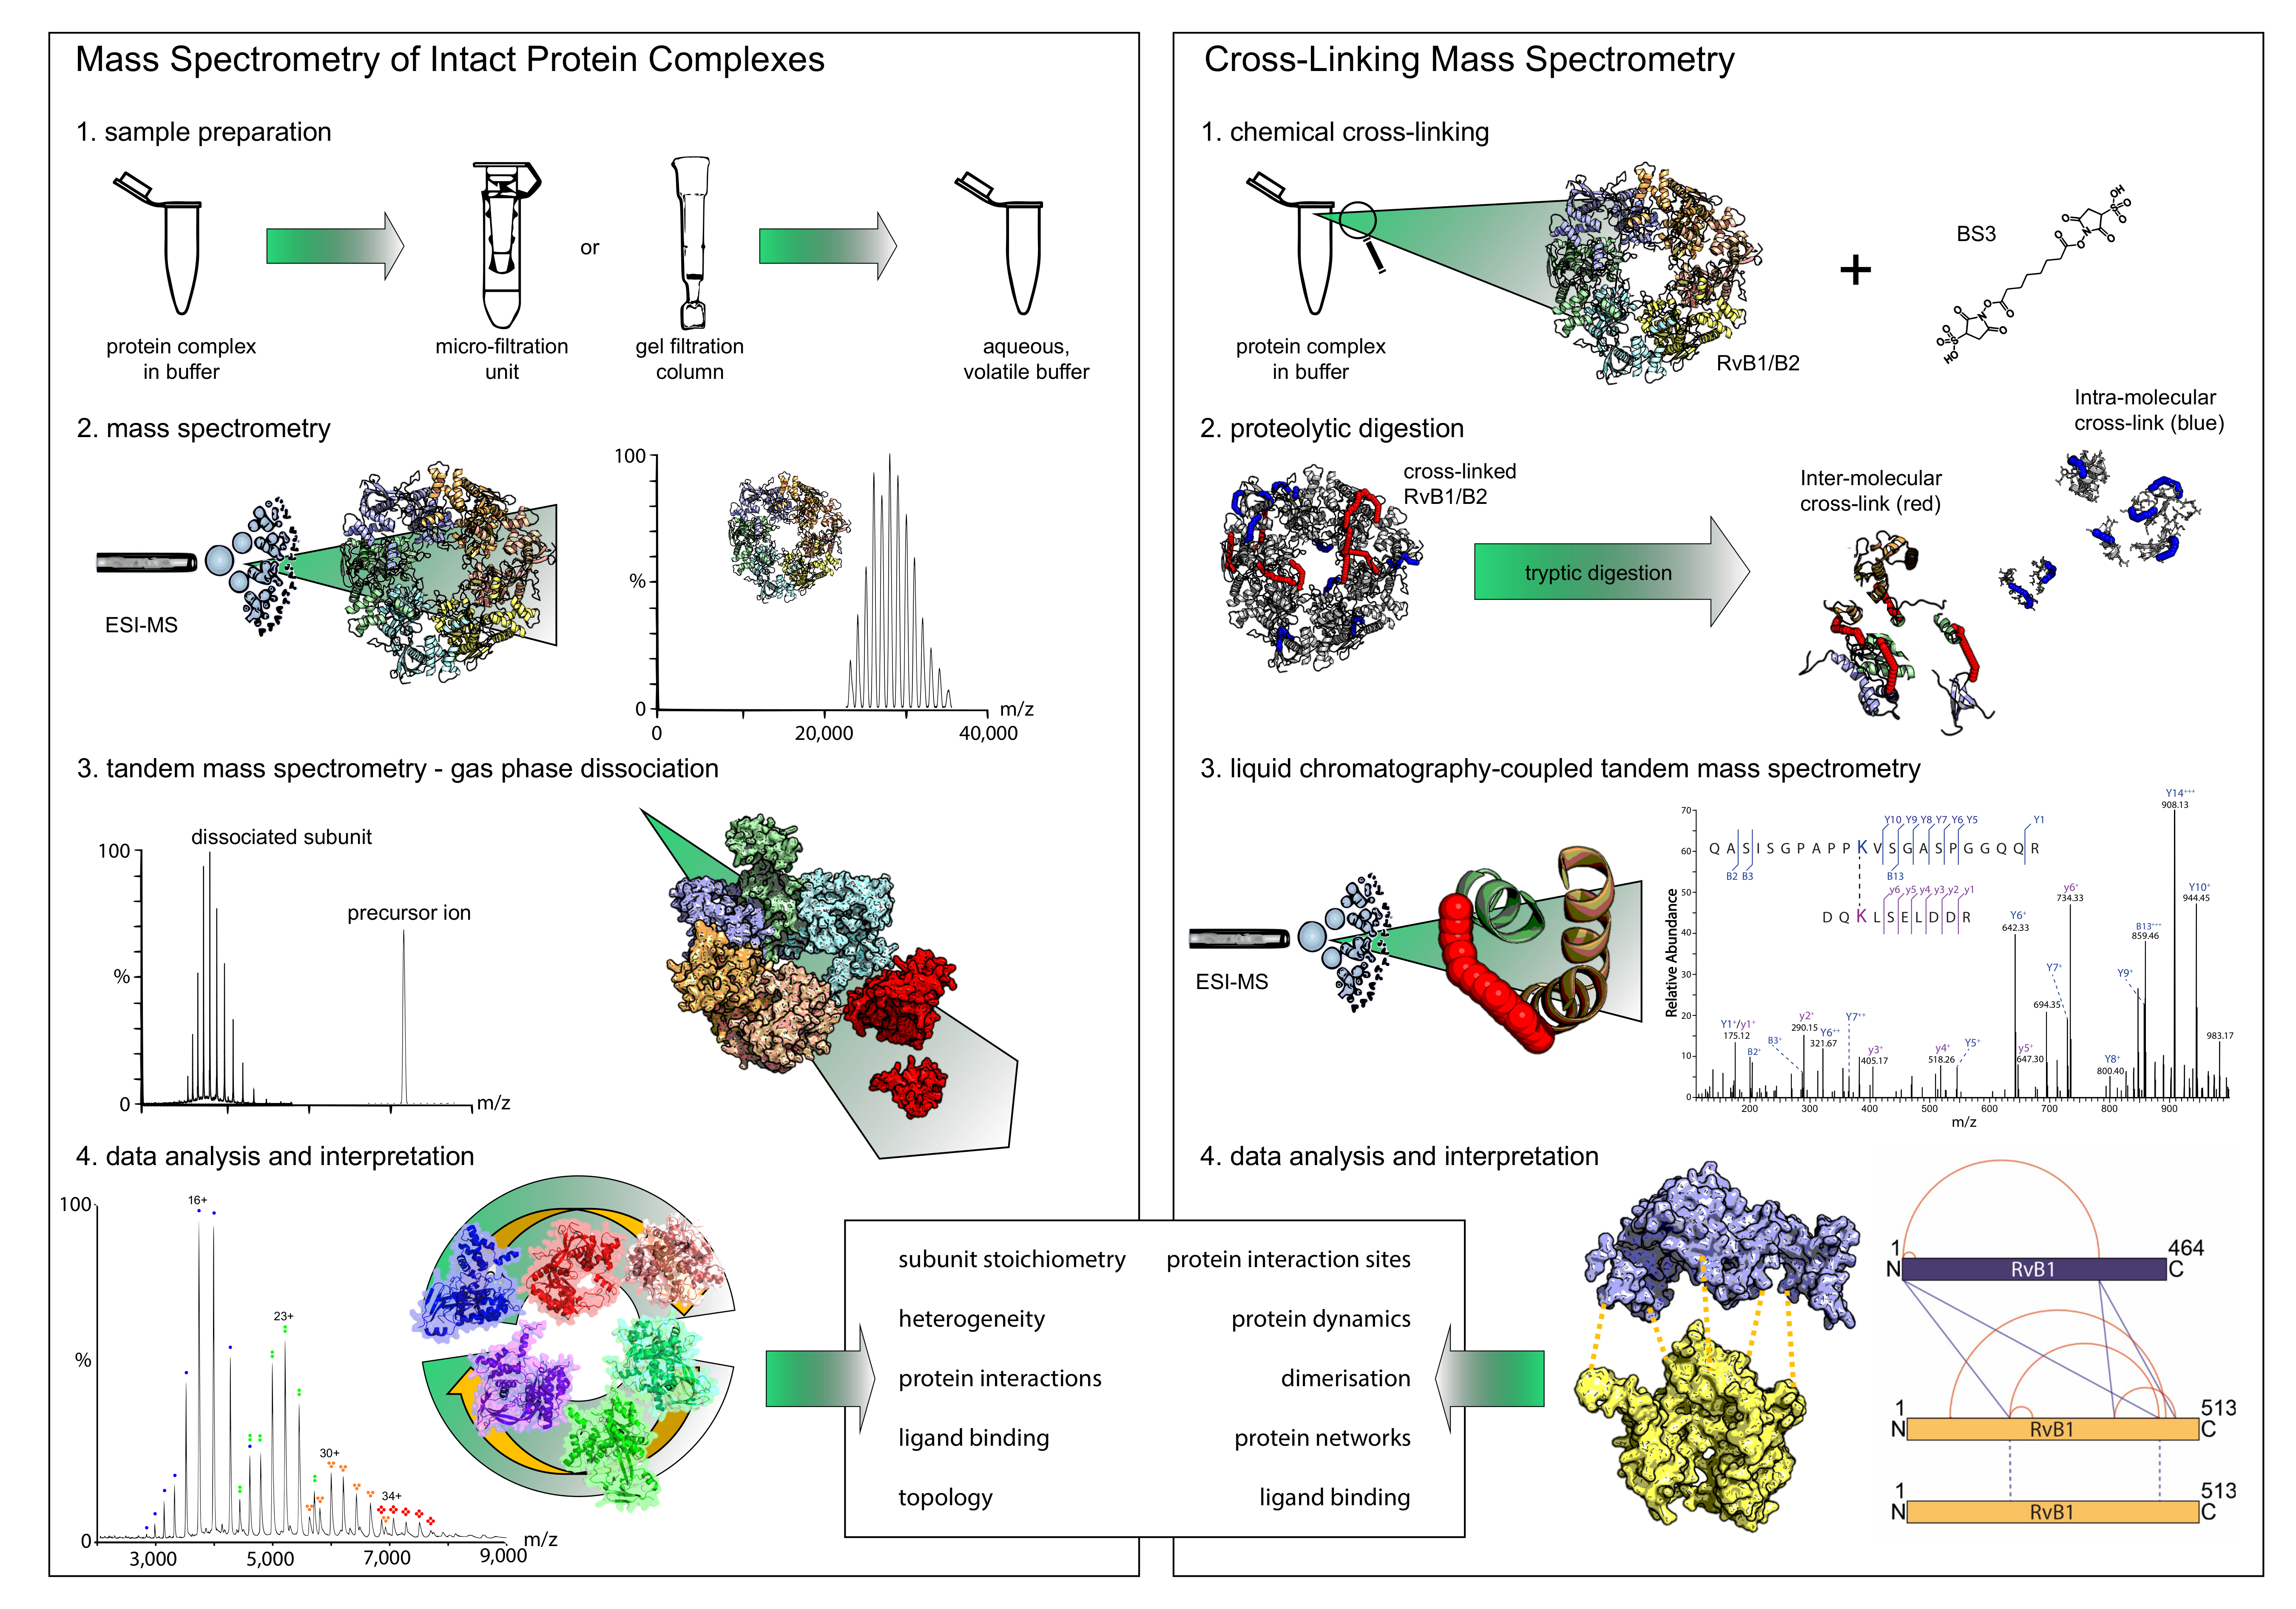 Combining Chemical Cross-linking and Mass Spectrometry of Intact